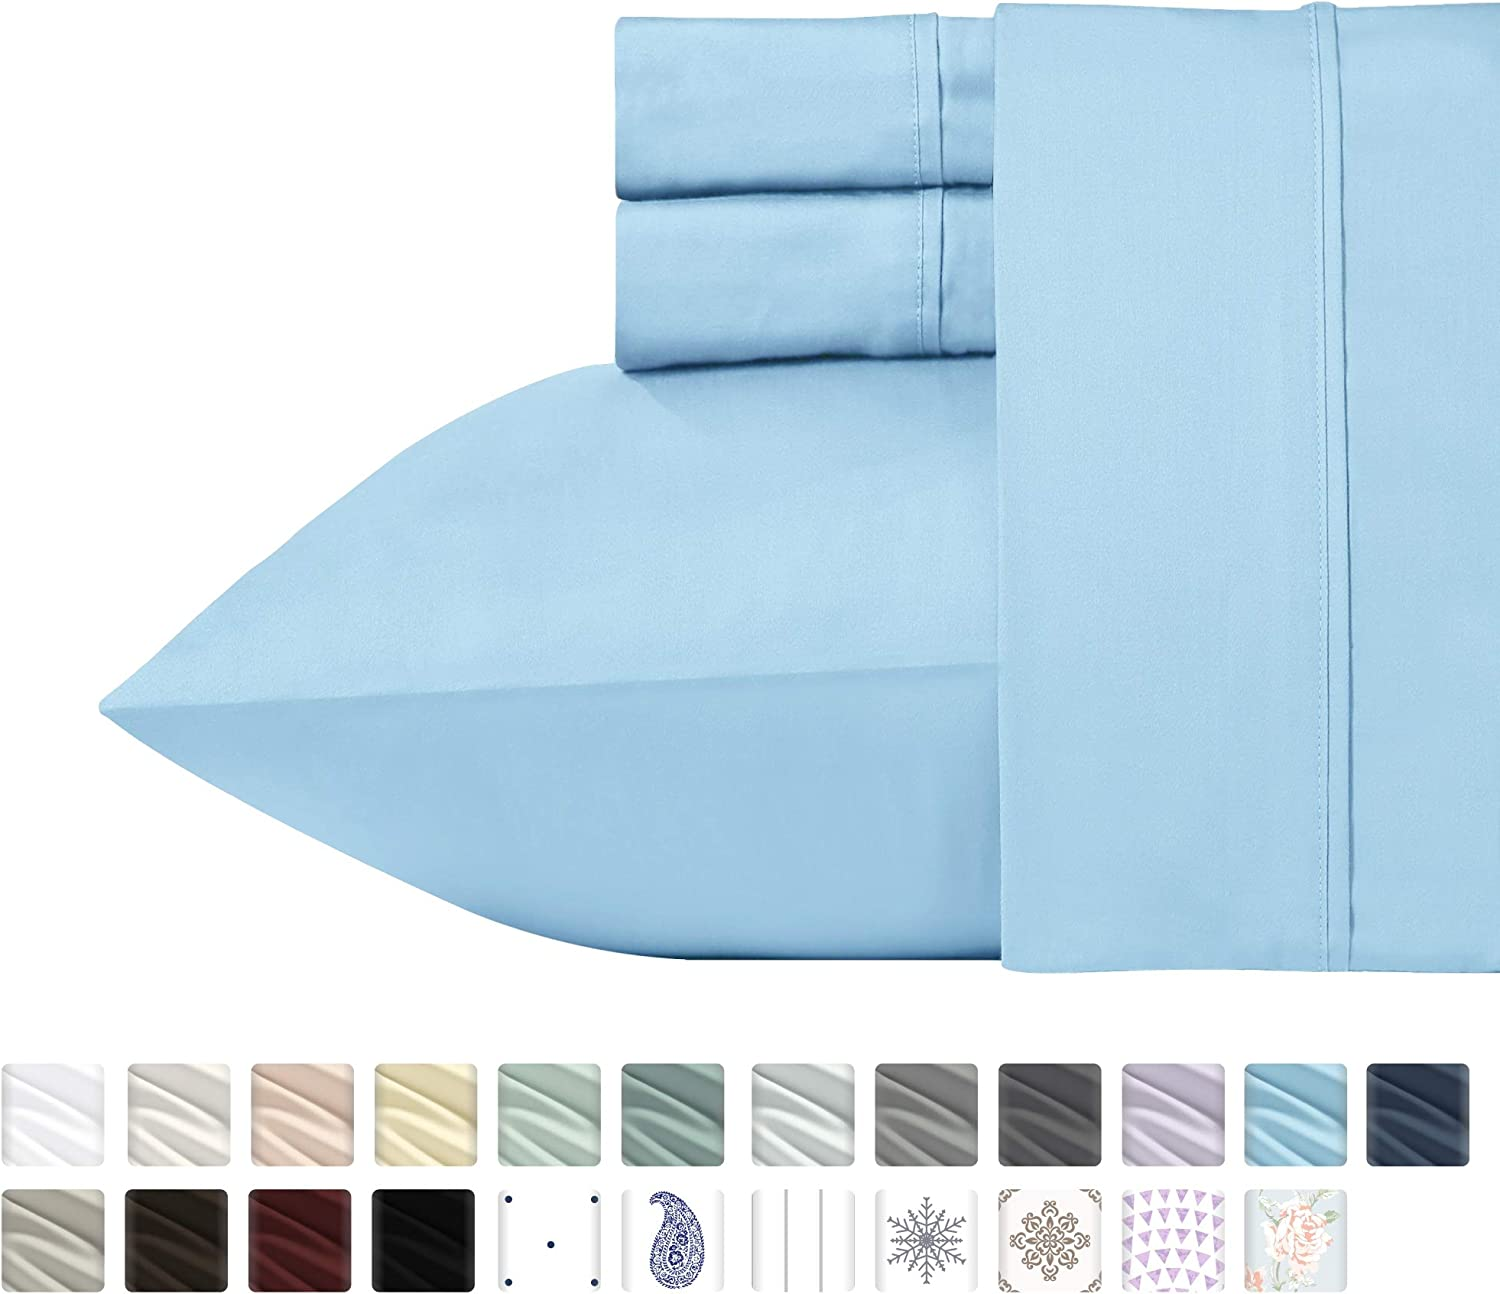 California Design Den 400 Thread Count 100% Cotton Sheet Set, Blue Full Sheets 4 Piece Set, Long-Staple Combed Pure Natural Cotton Bedsheets, Soft & Silky Sateen Weave